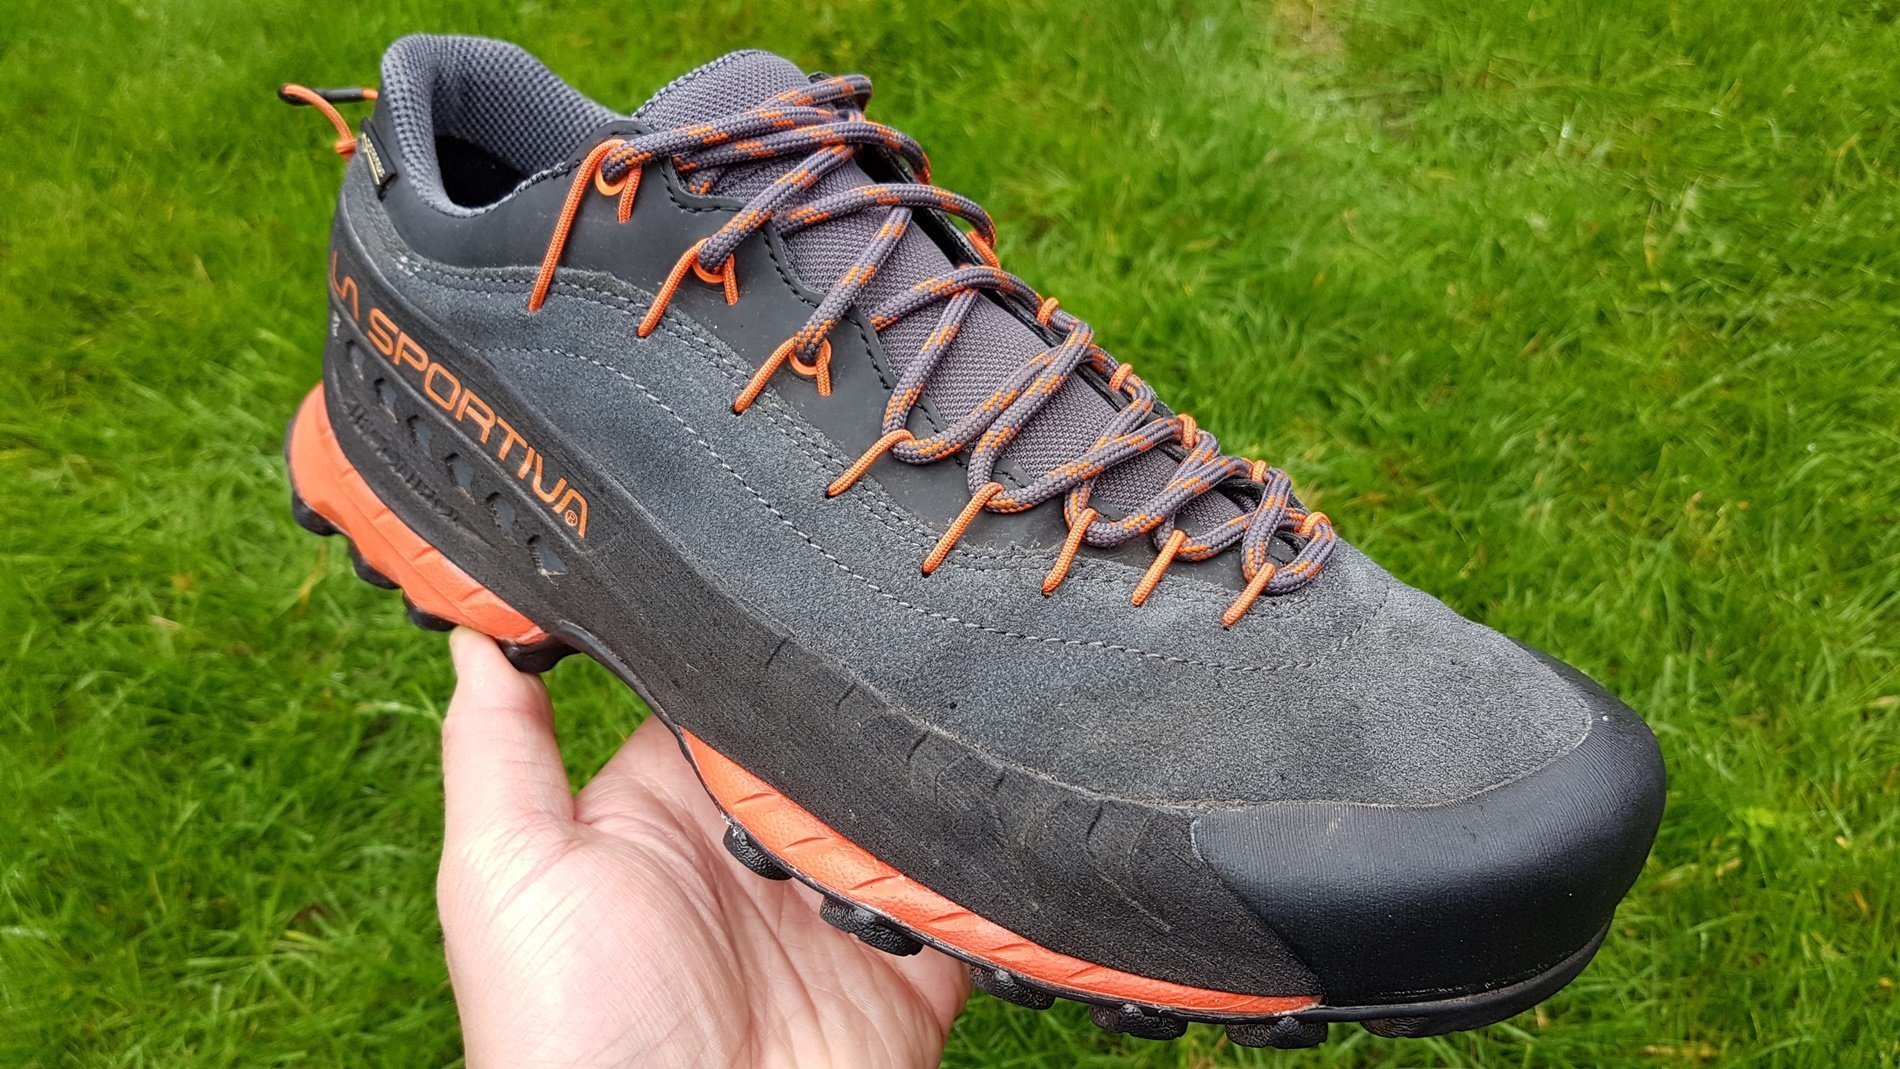 2b7603f000e La Sportiva TX4 GTX Approach Shoes Review | Walking Boot and Shoes ...